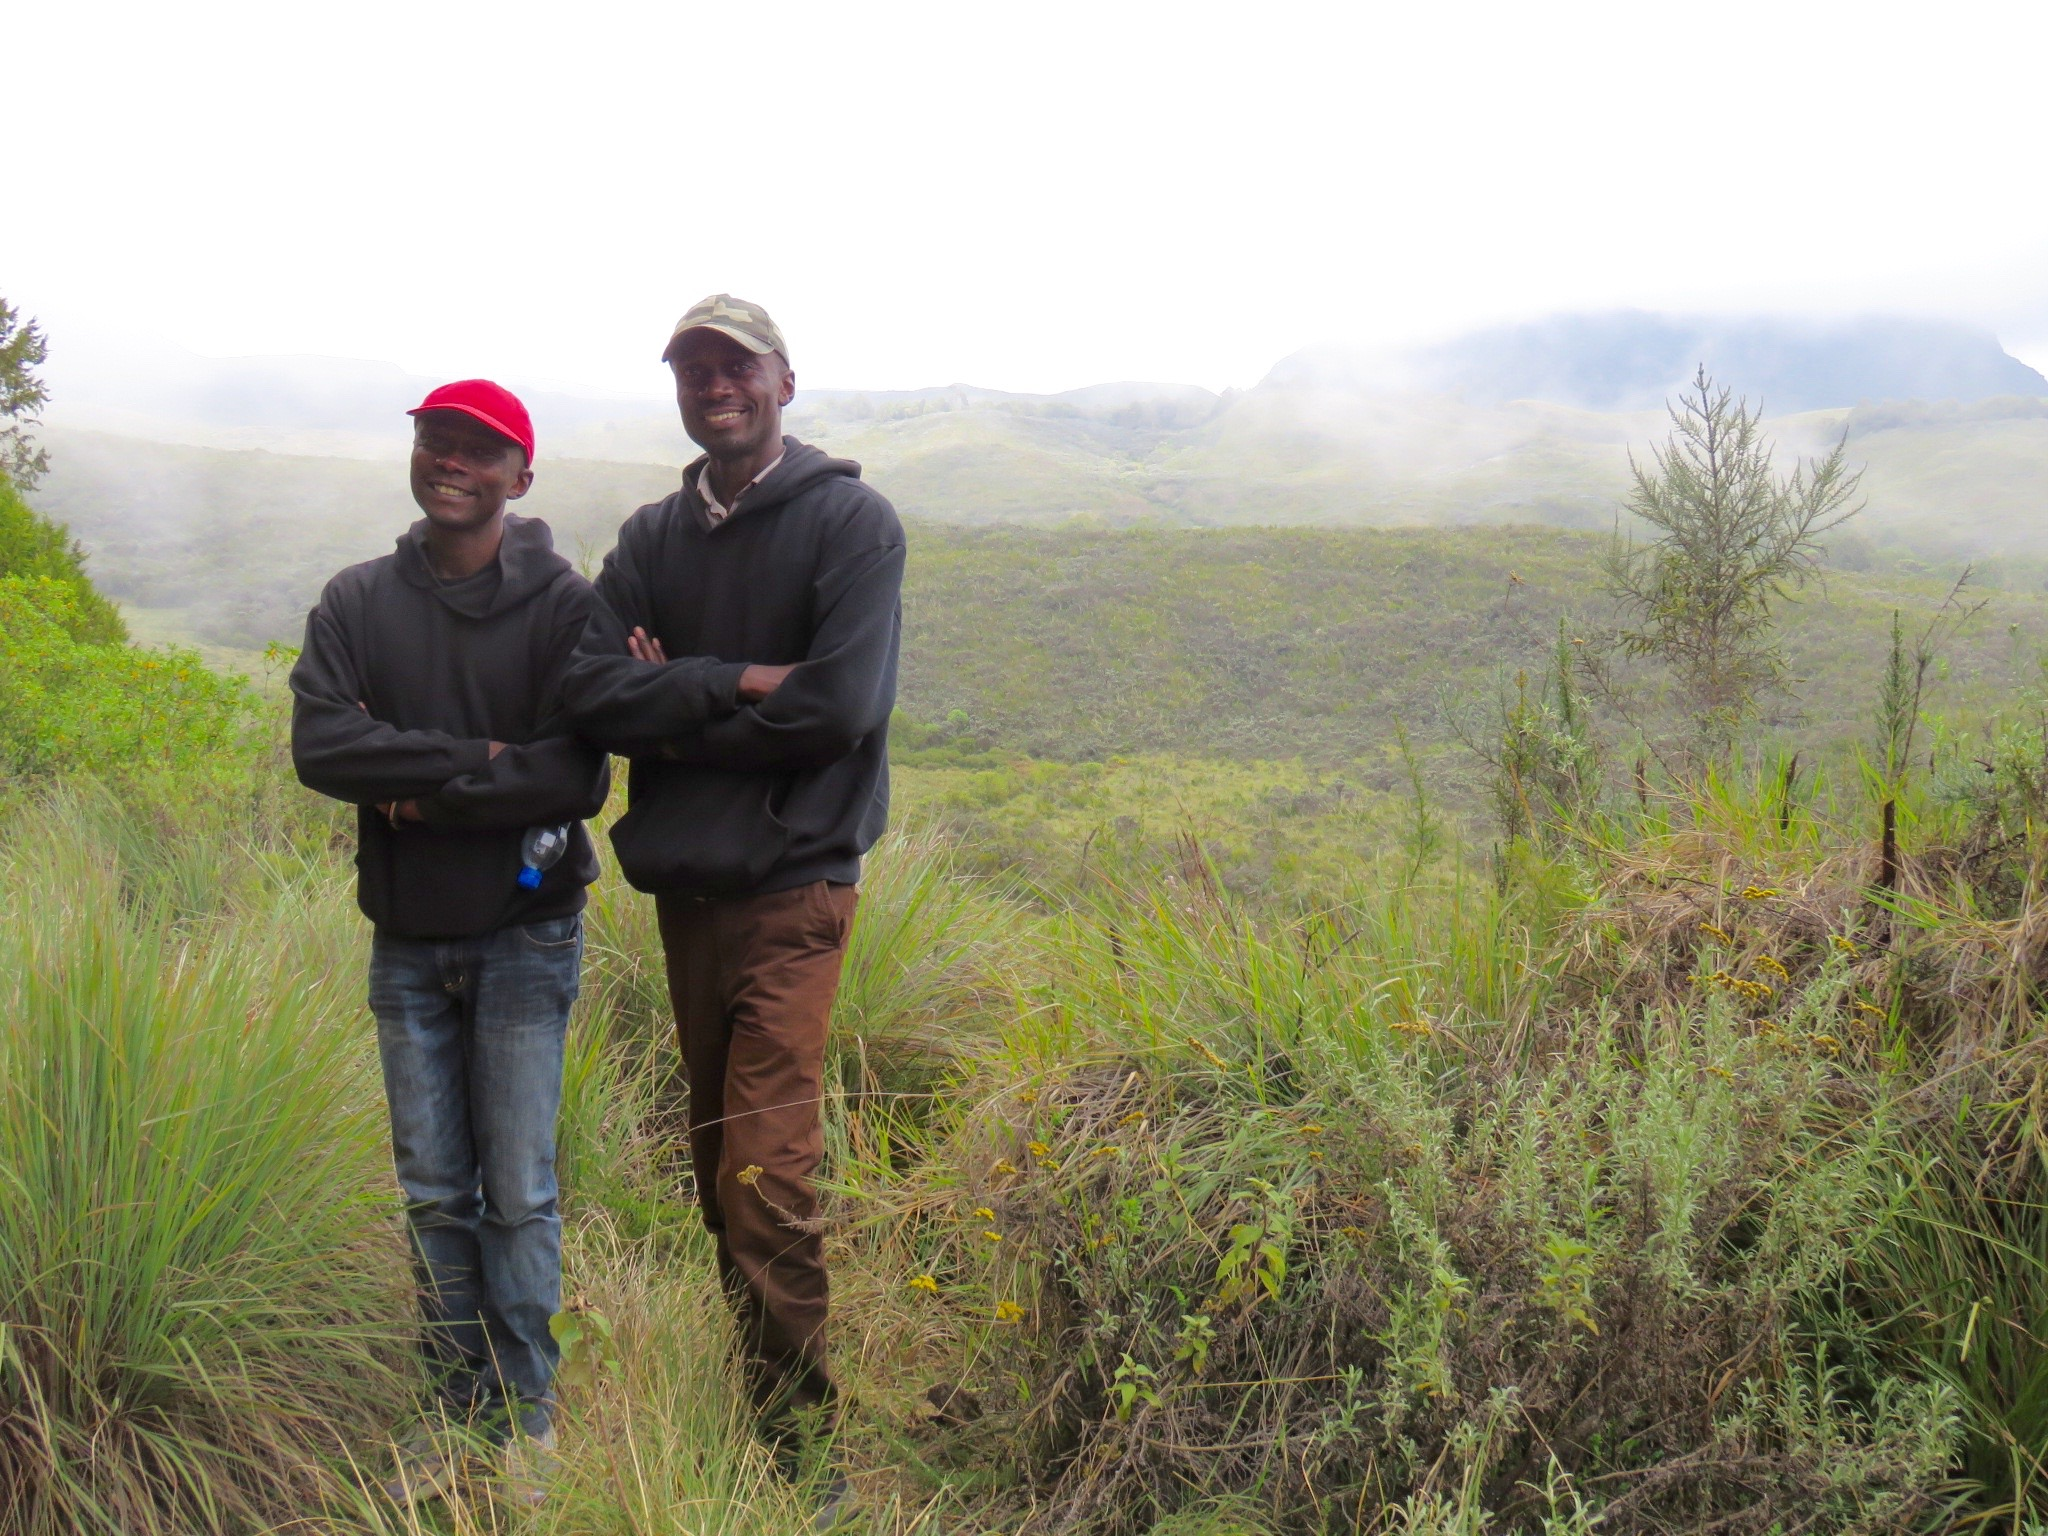 Brothers, Eliud and Peter at Mount Kenya National Park